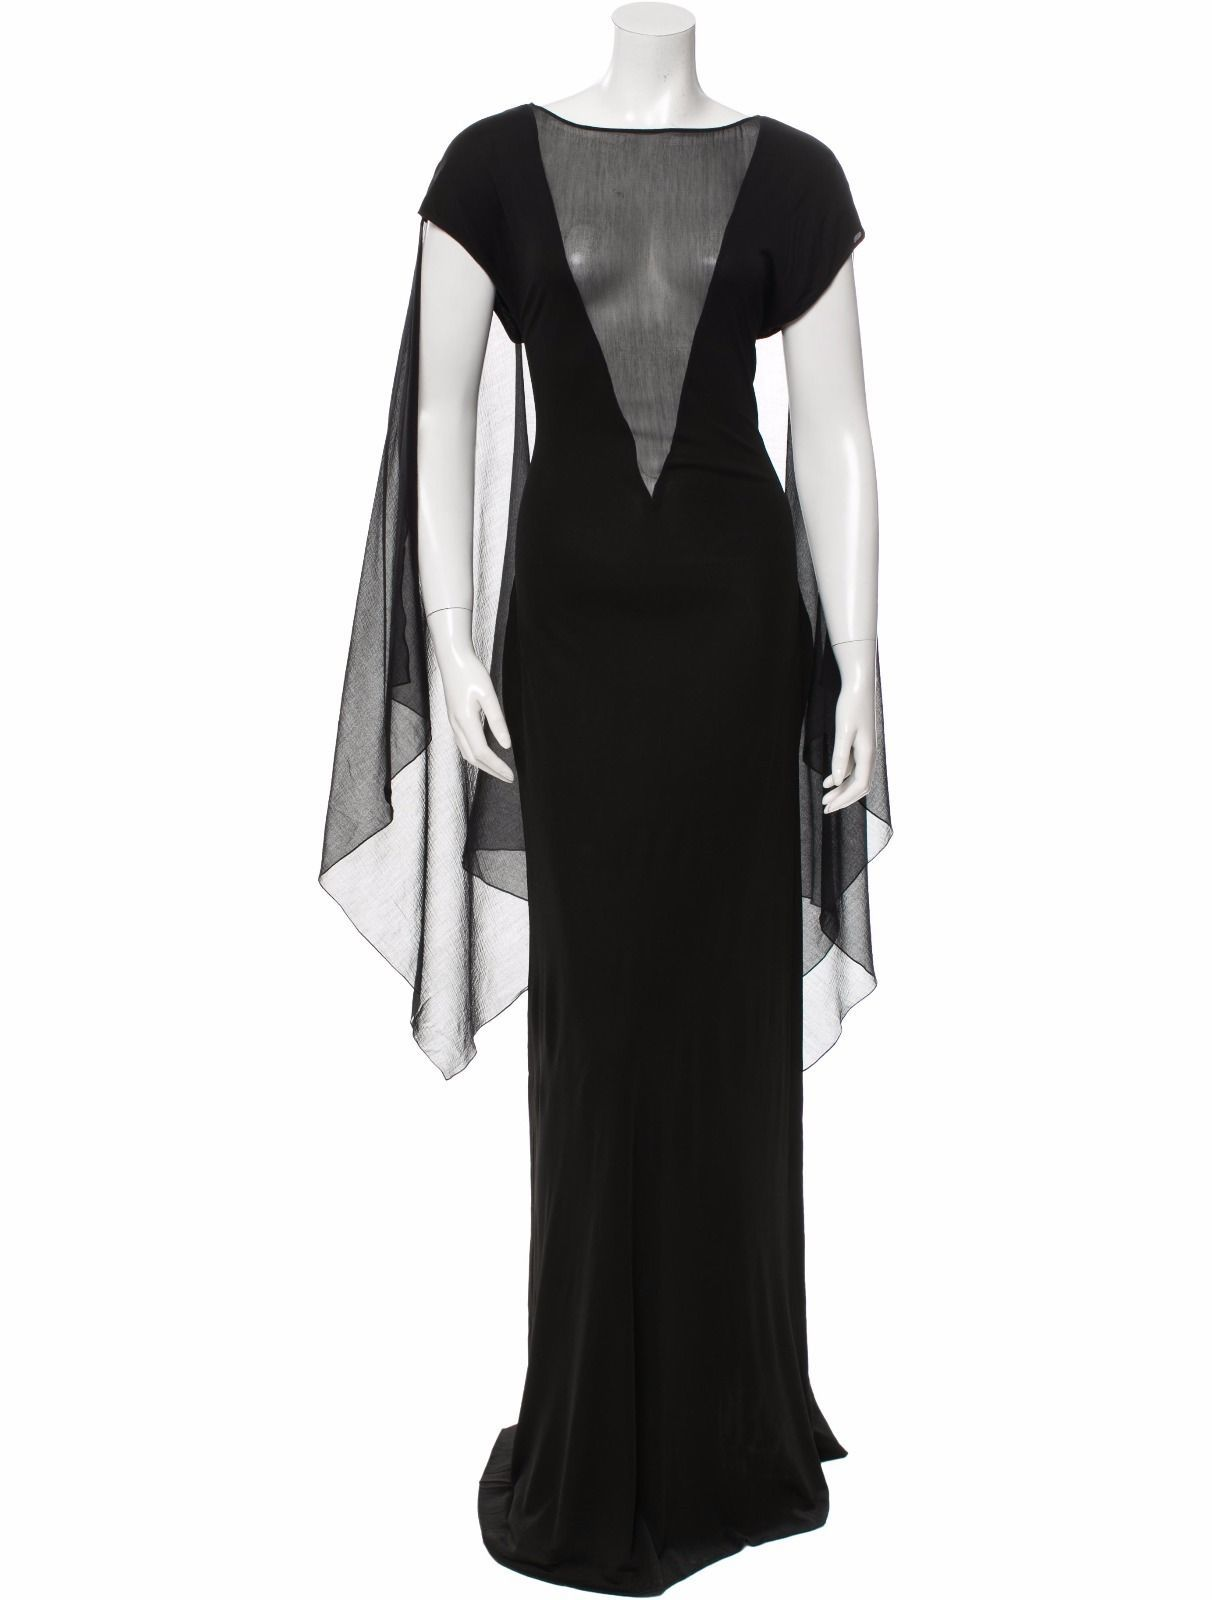 STUNNING NWT BLACK JEAN PAUL GAULTIER MAXI DRESS WITH SHEER CENTER PANEL/SLEEVES